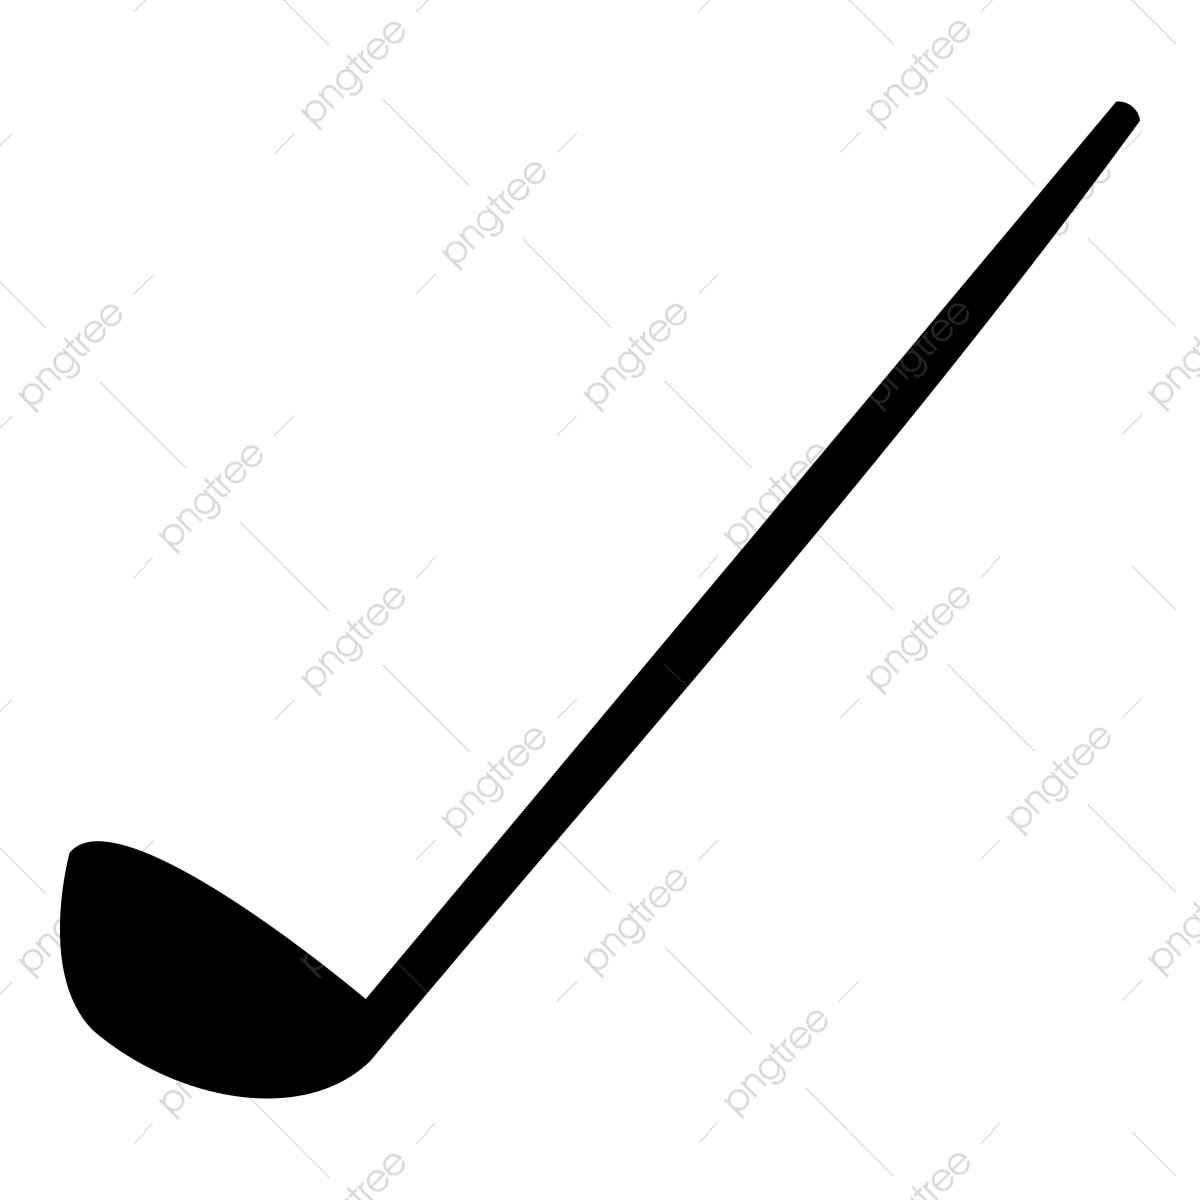 Golf Clubs Icon Simple Style Style Icons Simple Icons Golf Icons Png And Vector With Transparent Background For Free Download